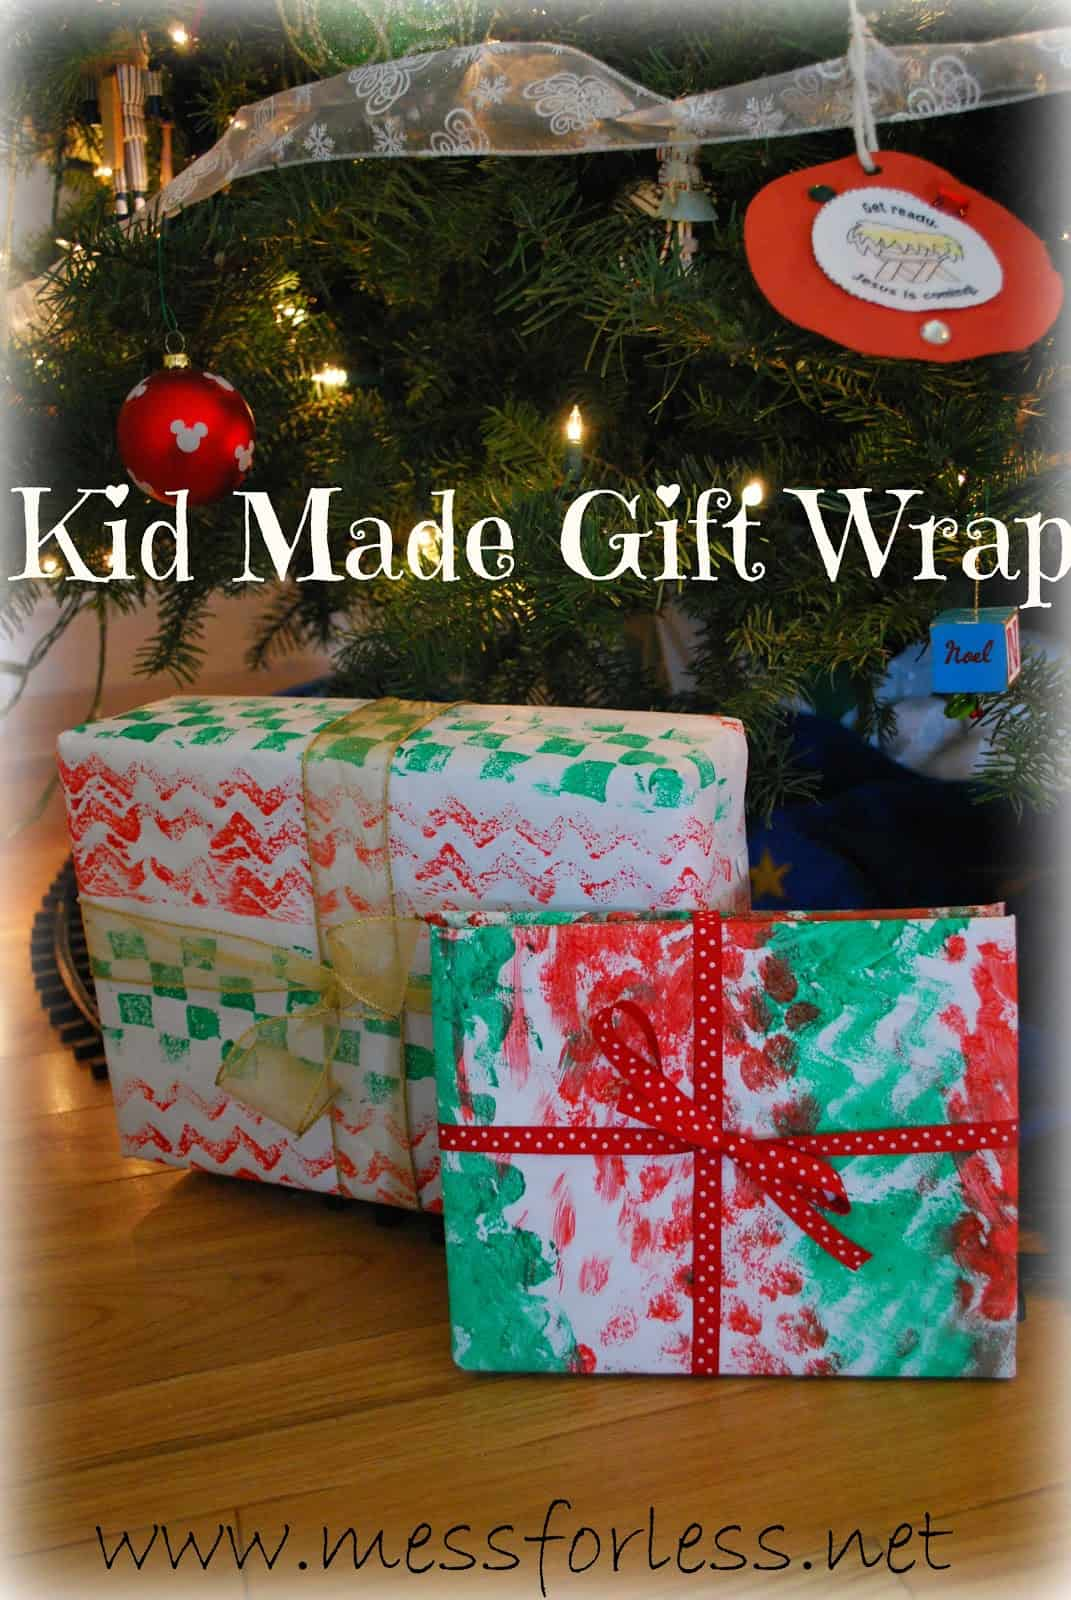 Kid Made Gift Wrap - Mess for Less